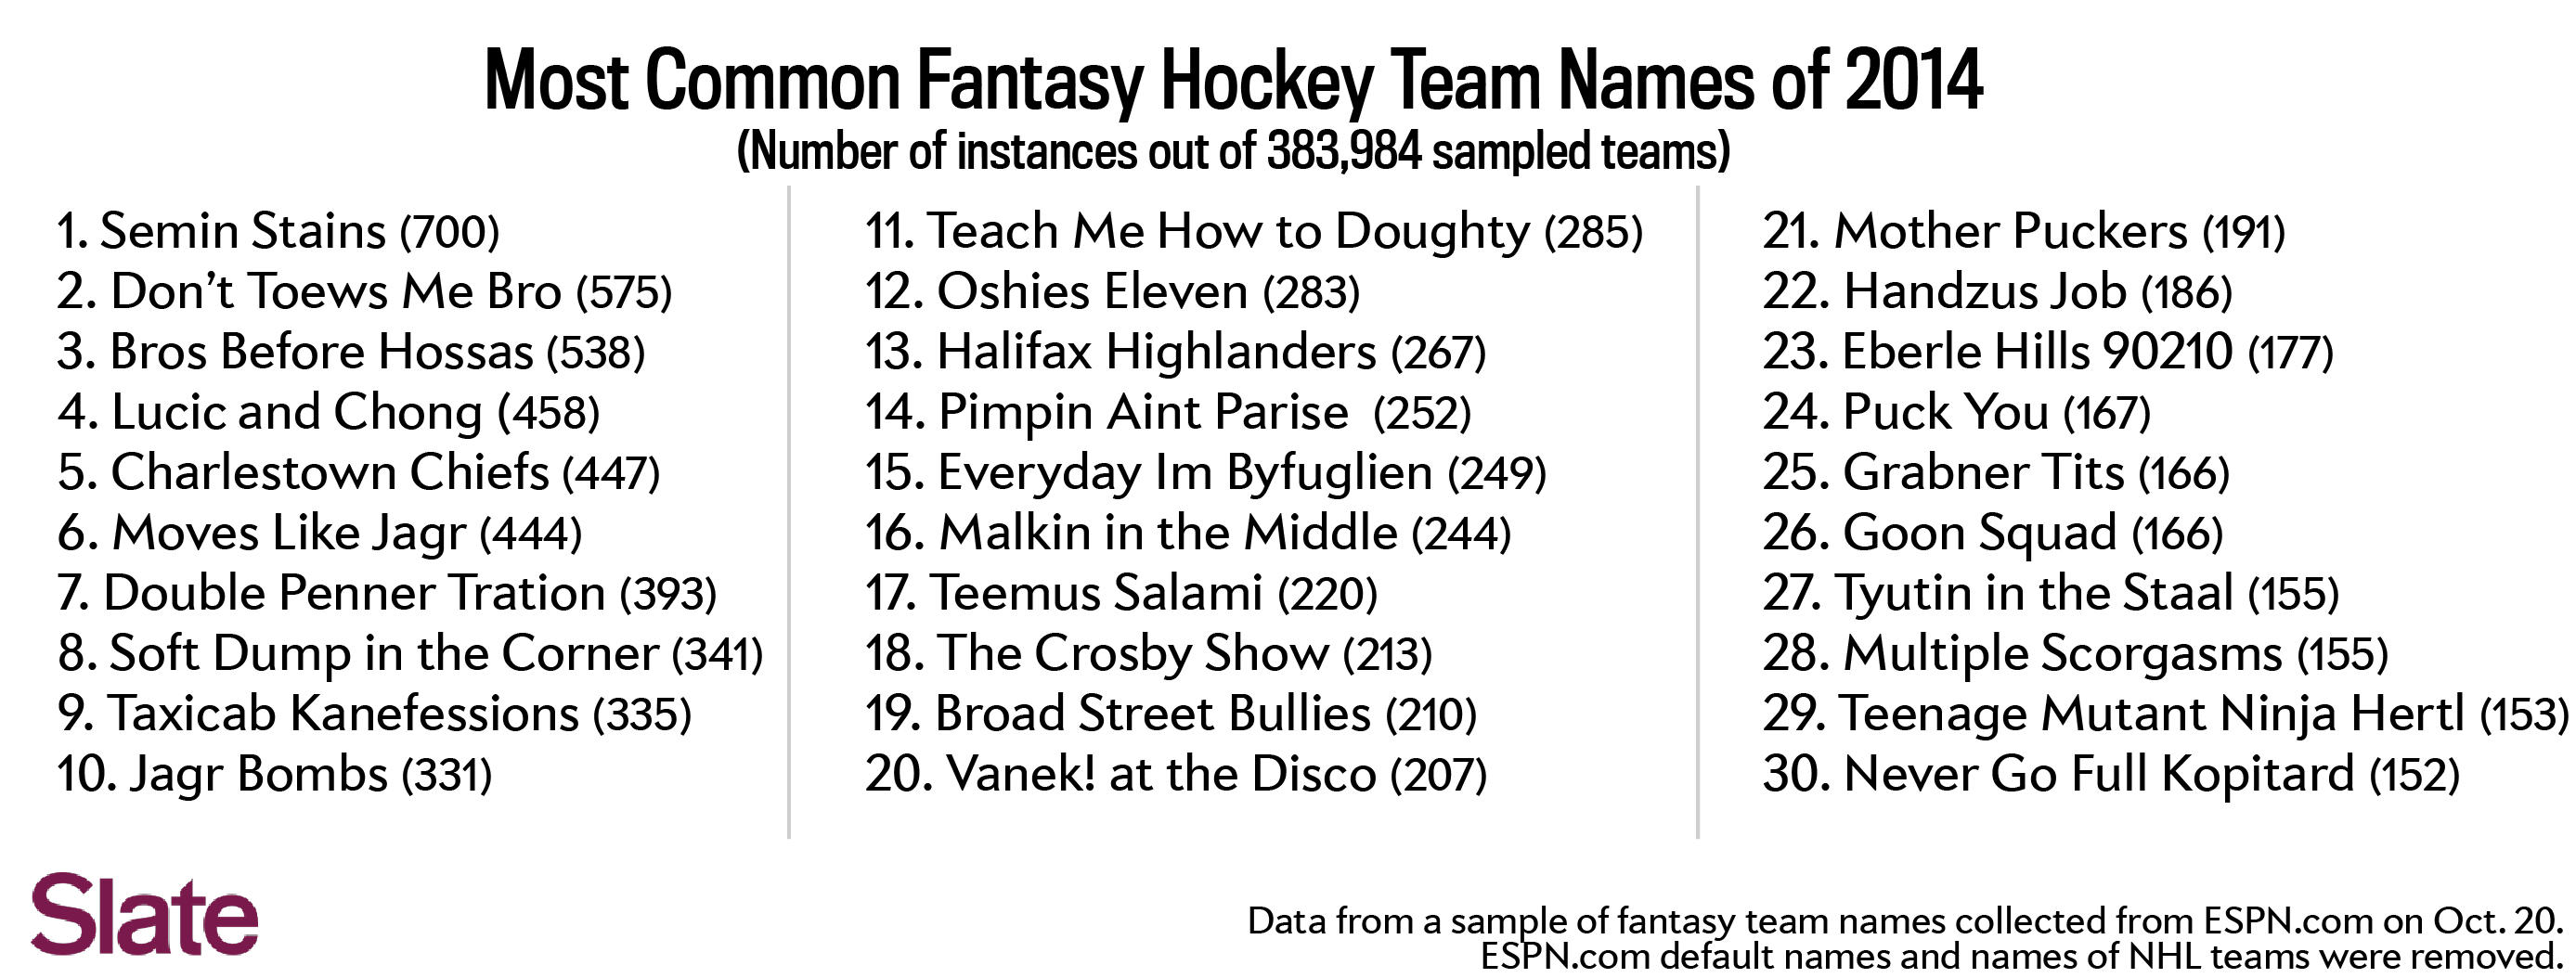 Congratulations Blackhawks Fans Three Of The Top Nine Fantasy Names On List Don T Toews Me Bro Bros Before Hossas And Taxicab Kanefessions Are